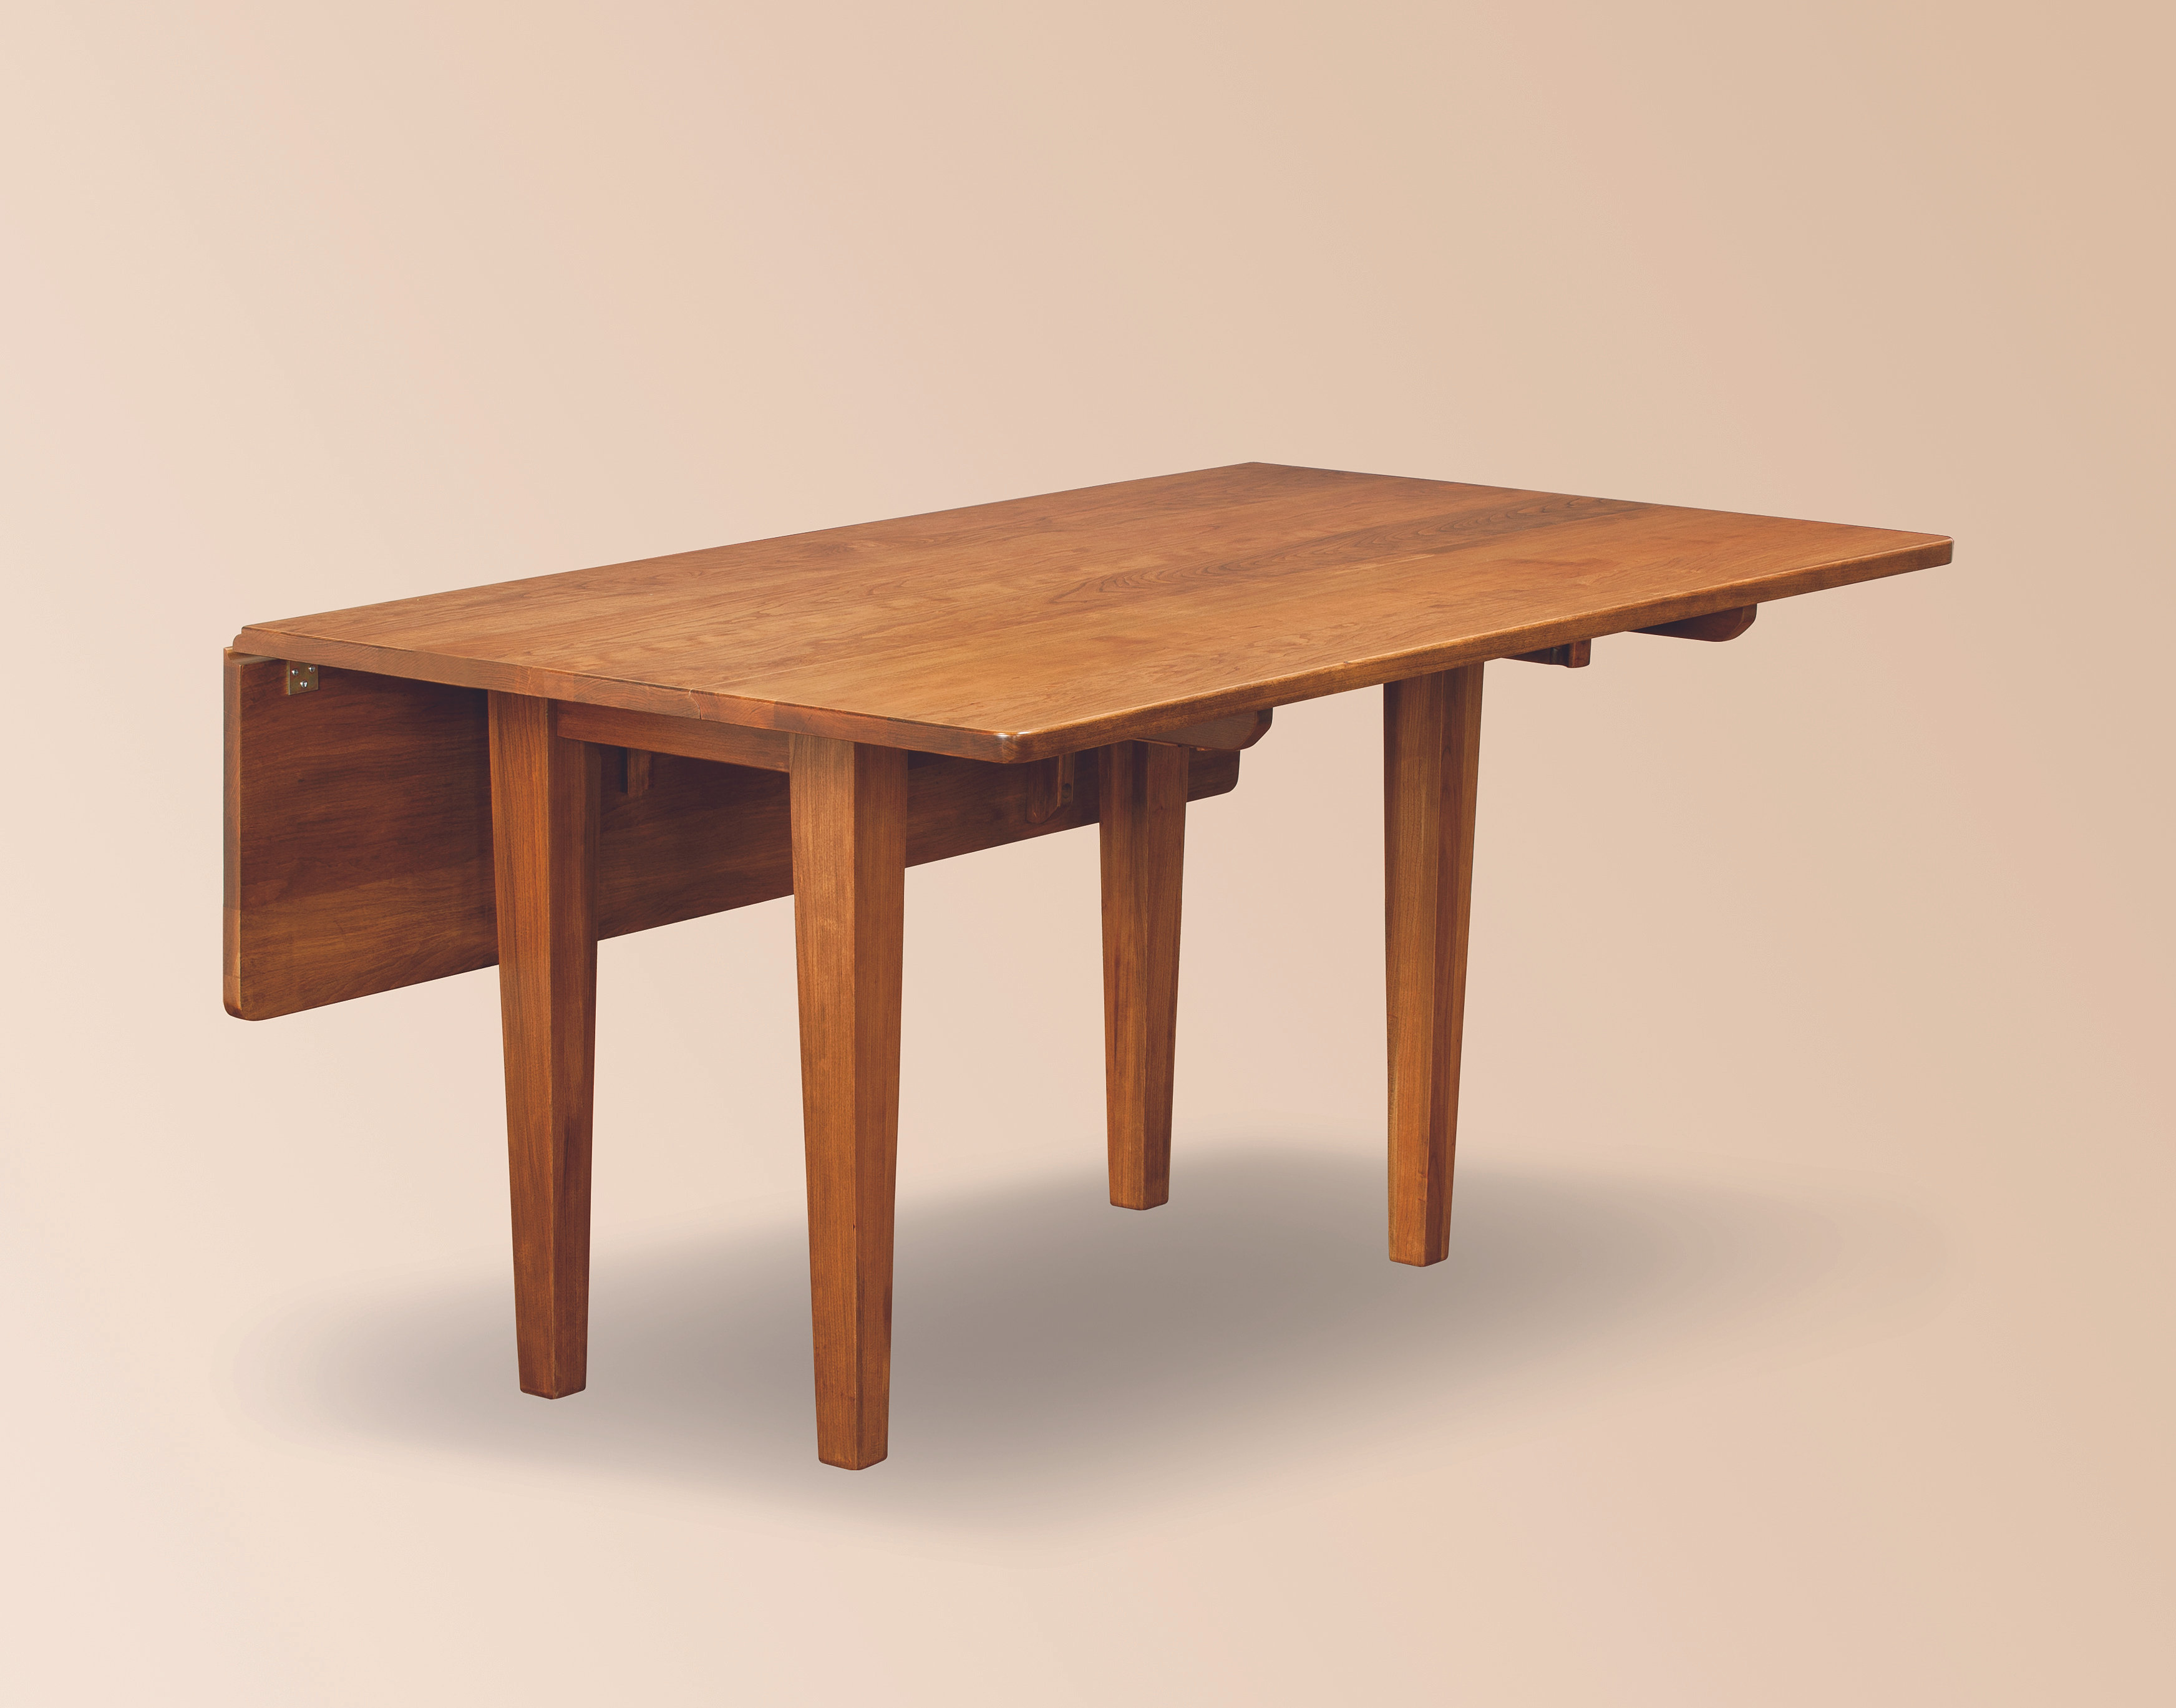 Bears in the woods amish furniture studio drop leaf table - Shaker dining room chairs designs ...